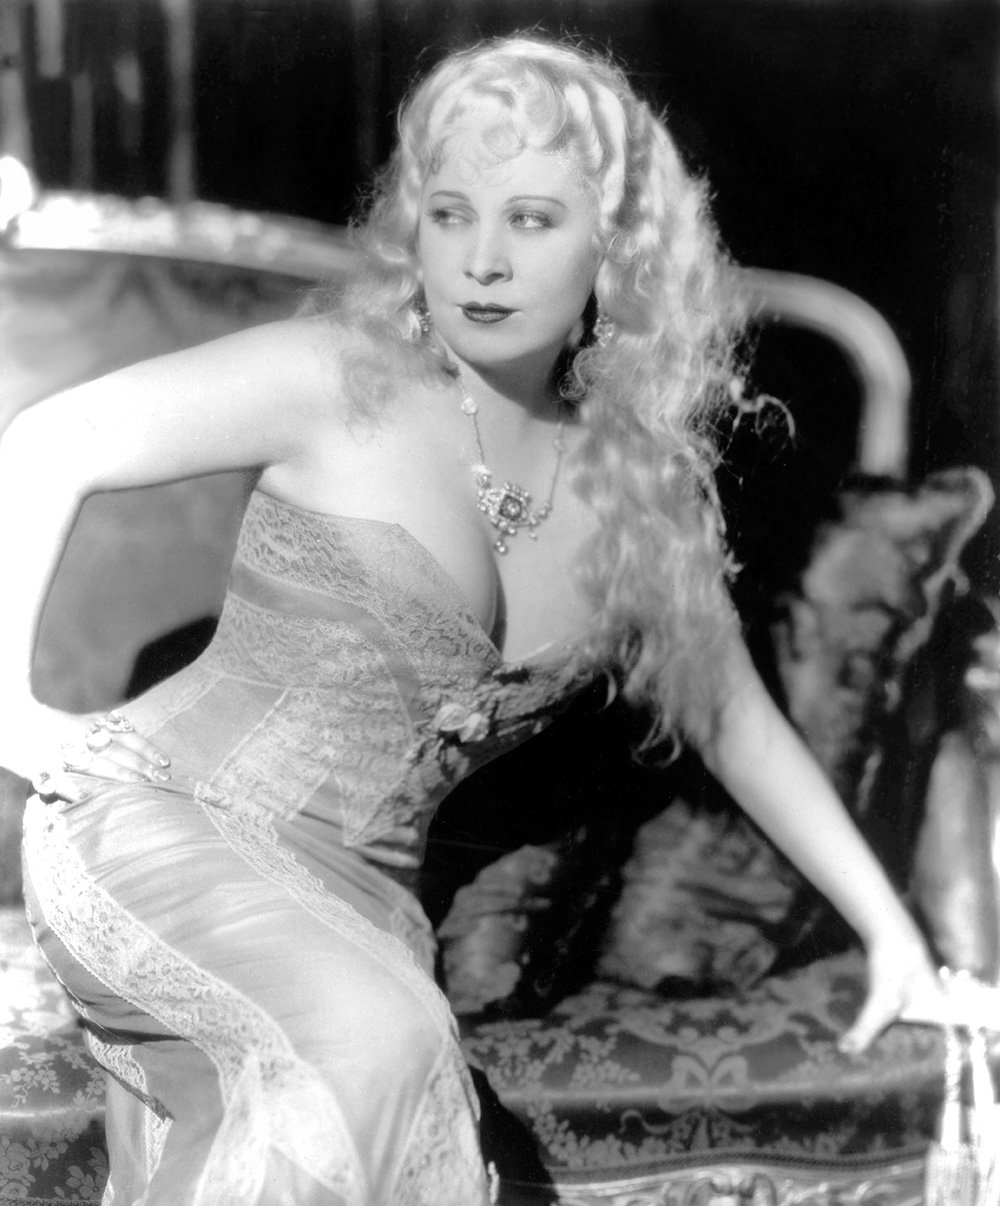 '30s sex symbol Mae West has been misquoted for decades, book reveals